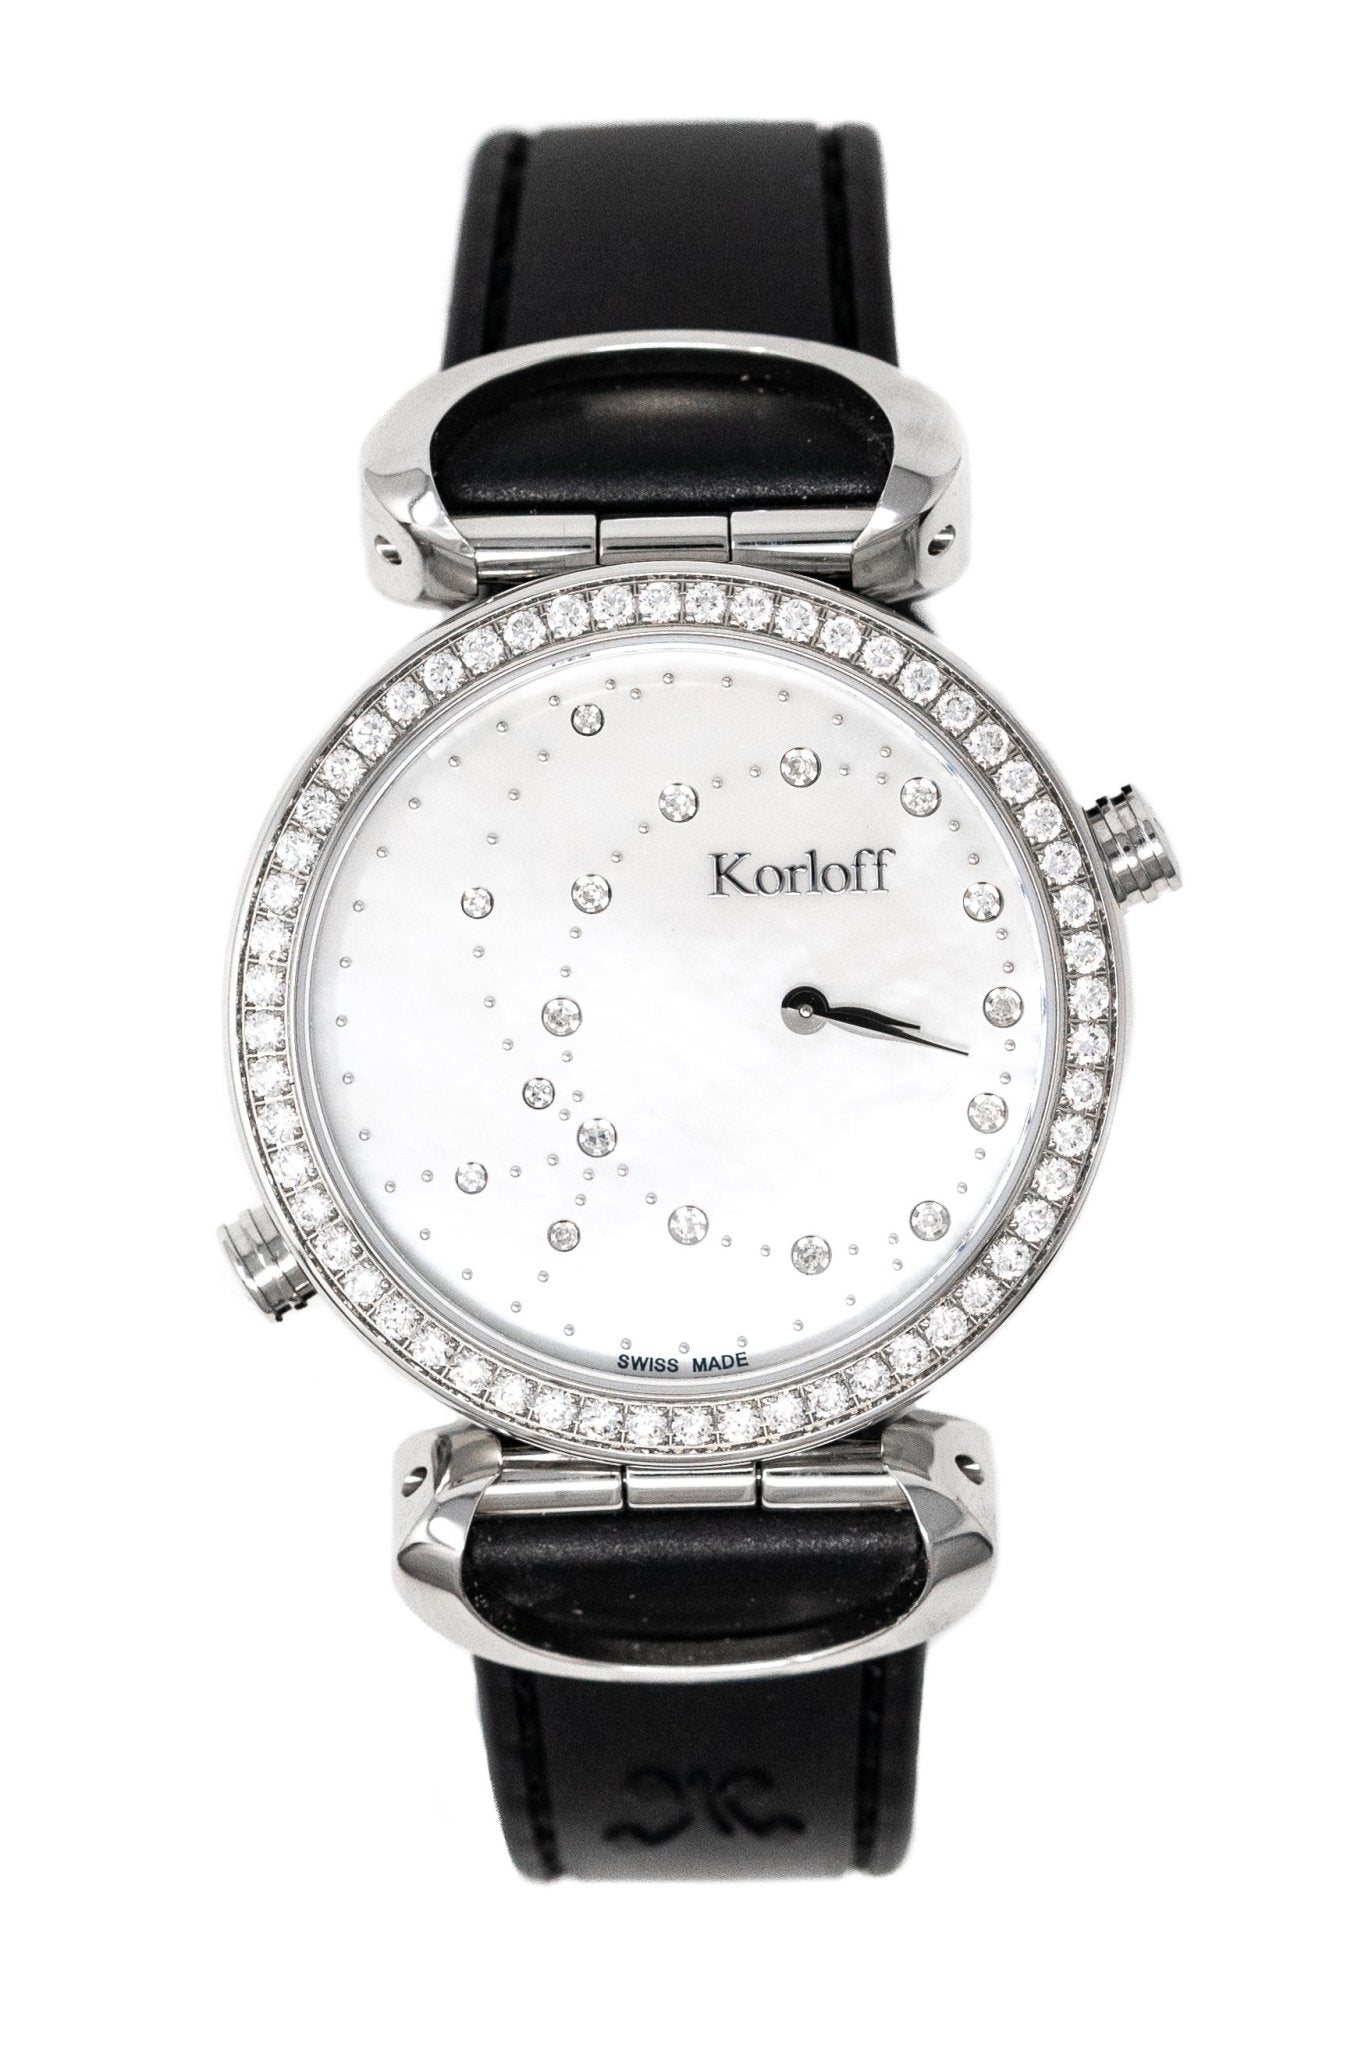 Korloff Voyager GMT Diamond Reversible - Watches & Crystals